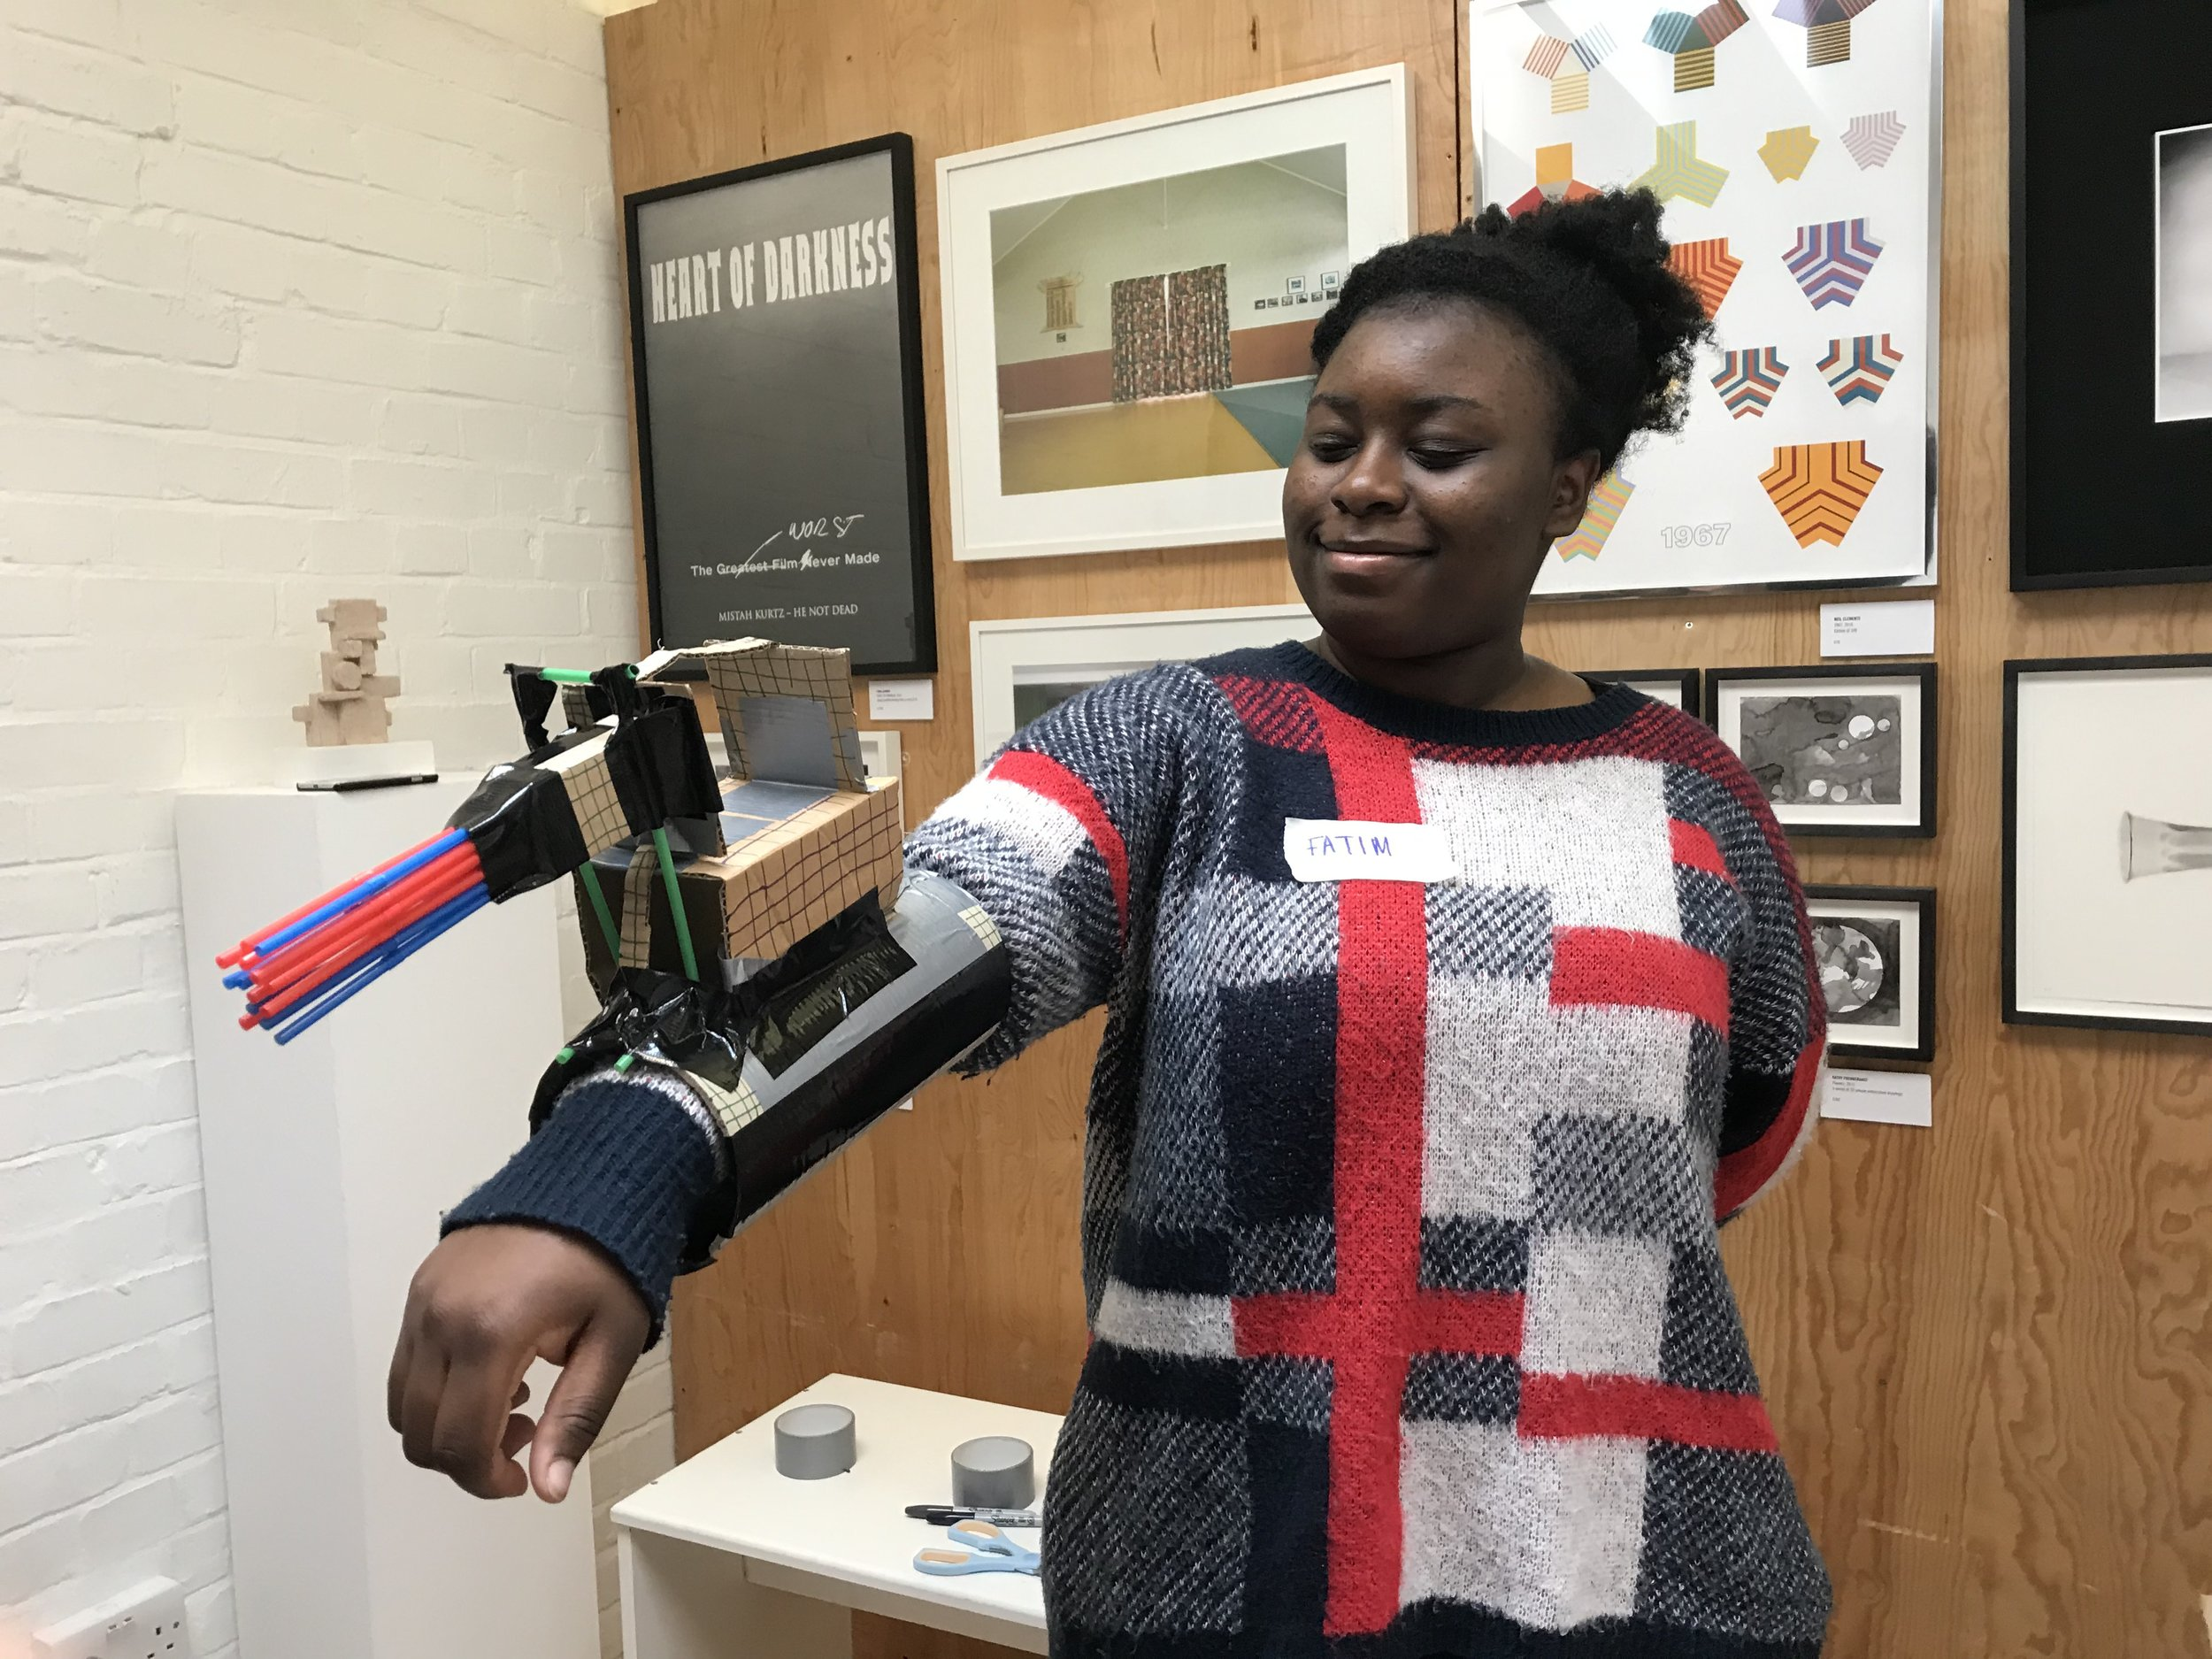 Fatim with her bionic arm